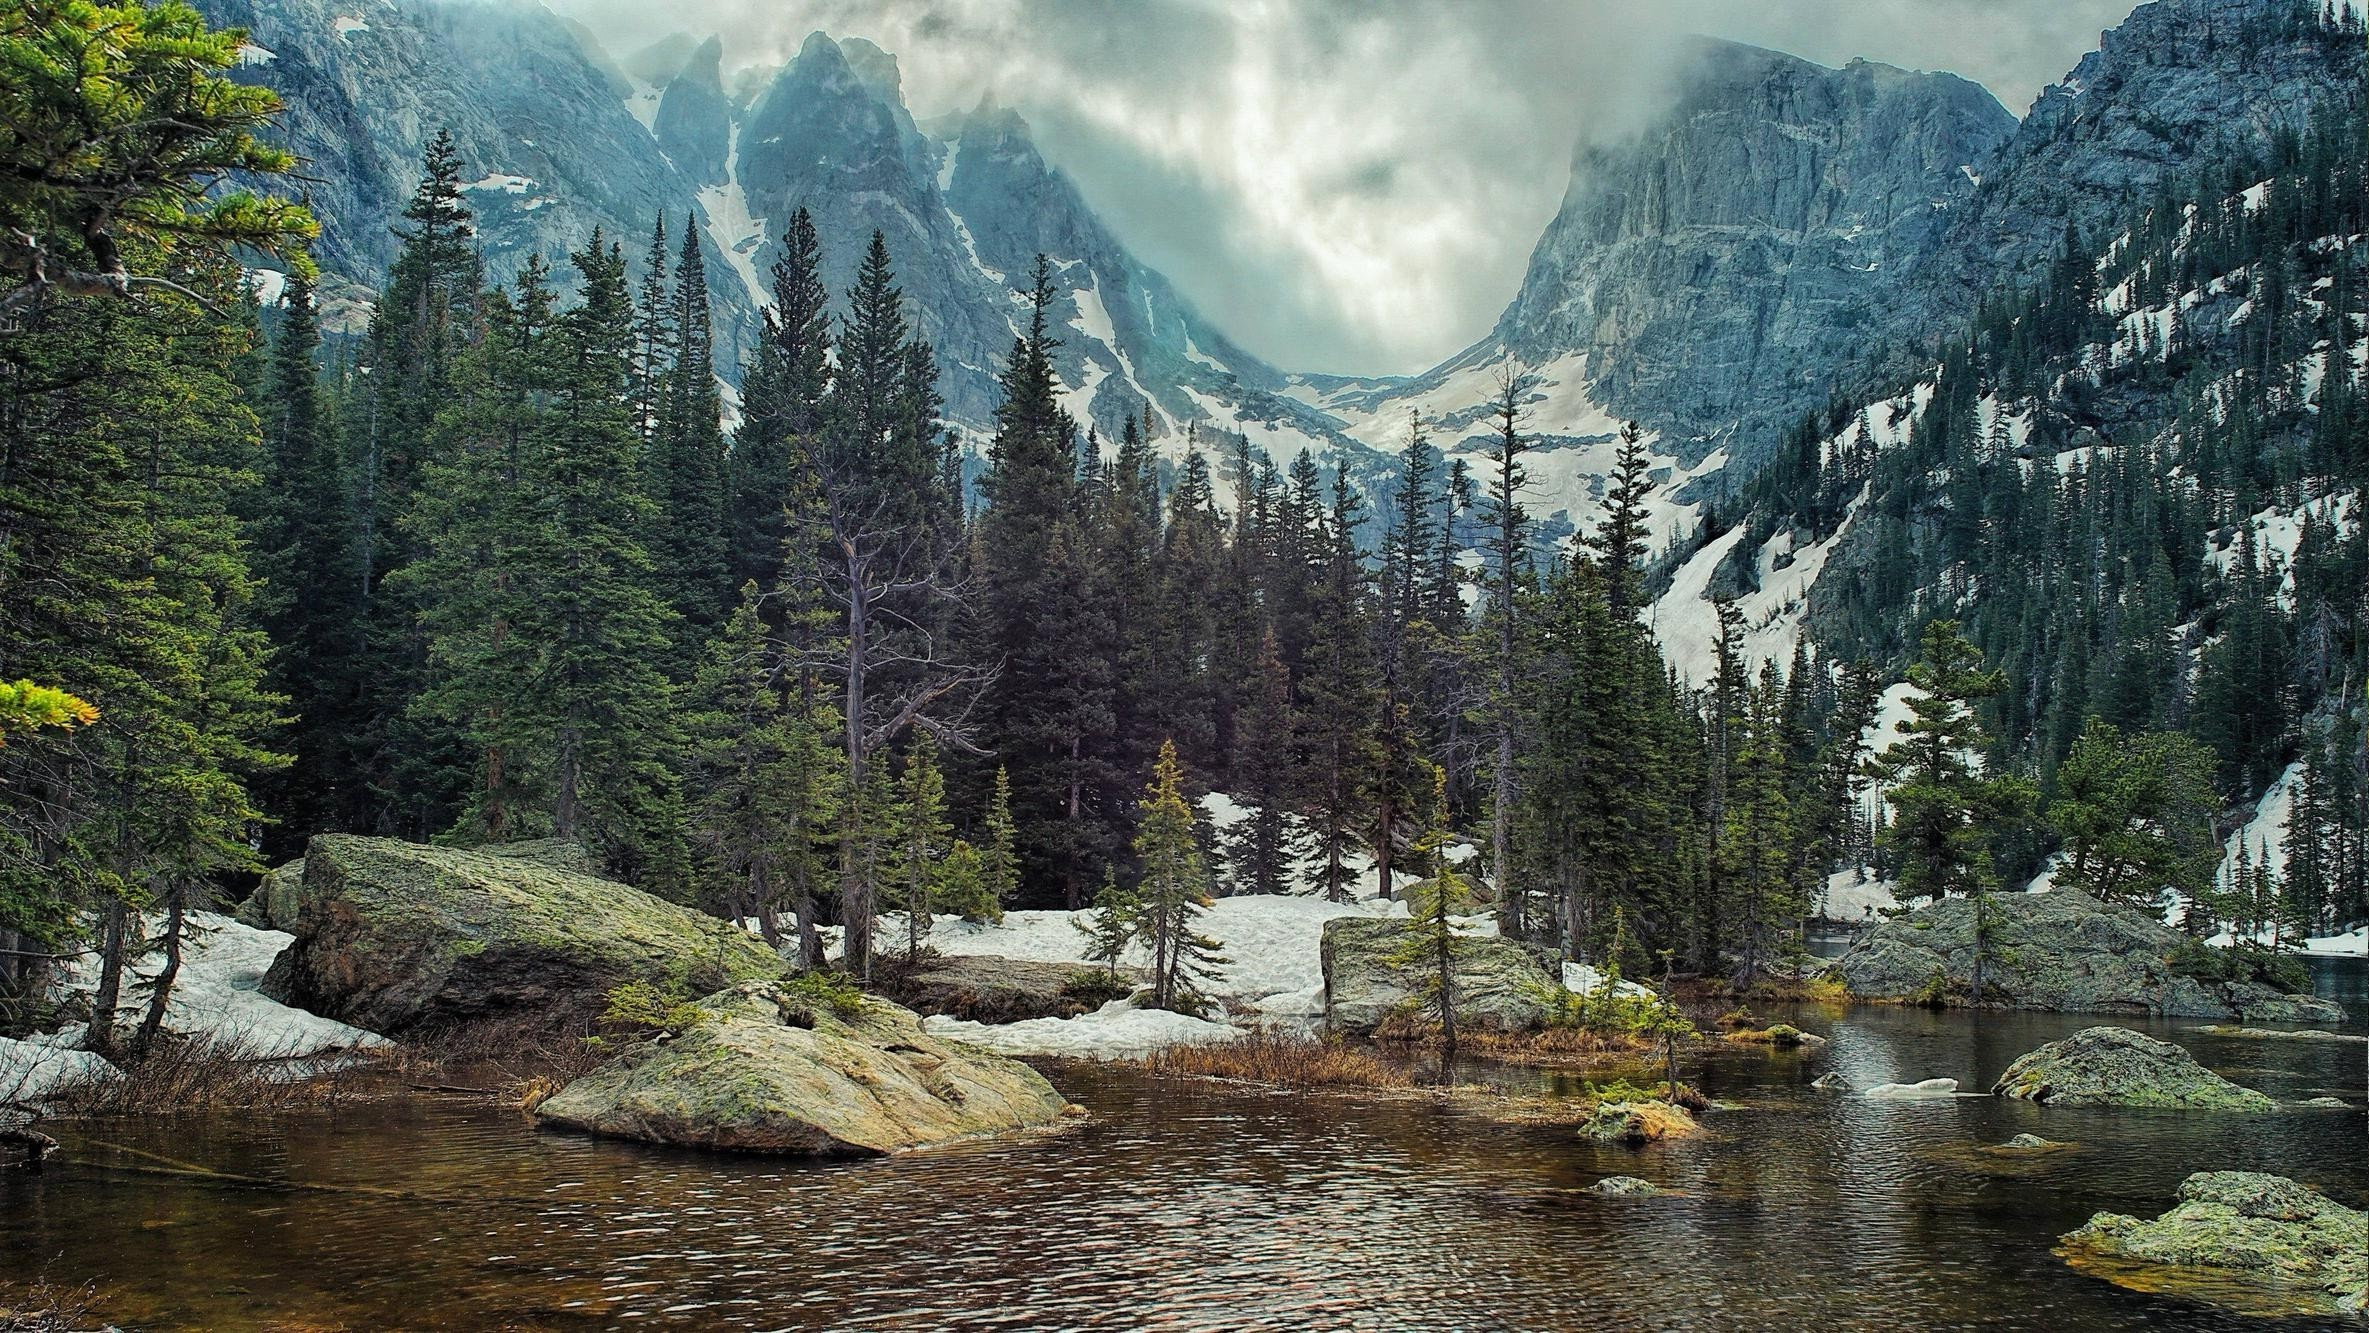 Res: 2369x1333, nature landscape mountain forest lake rock pine trees wallpaper and  background